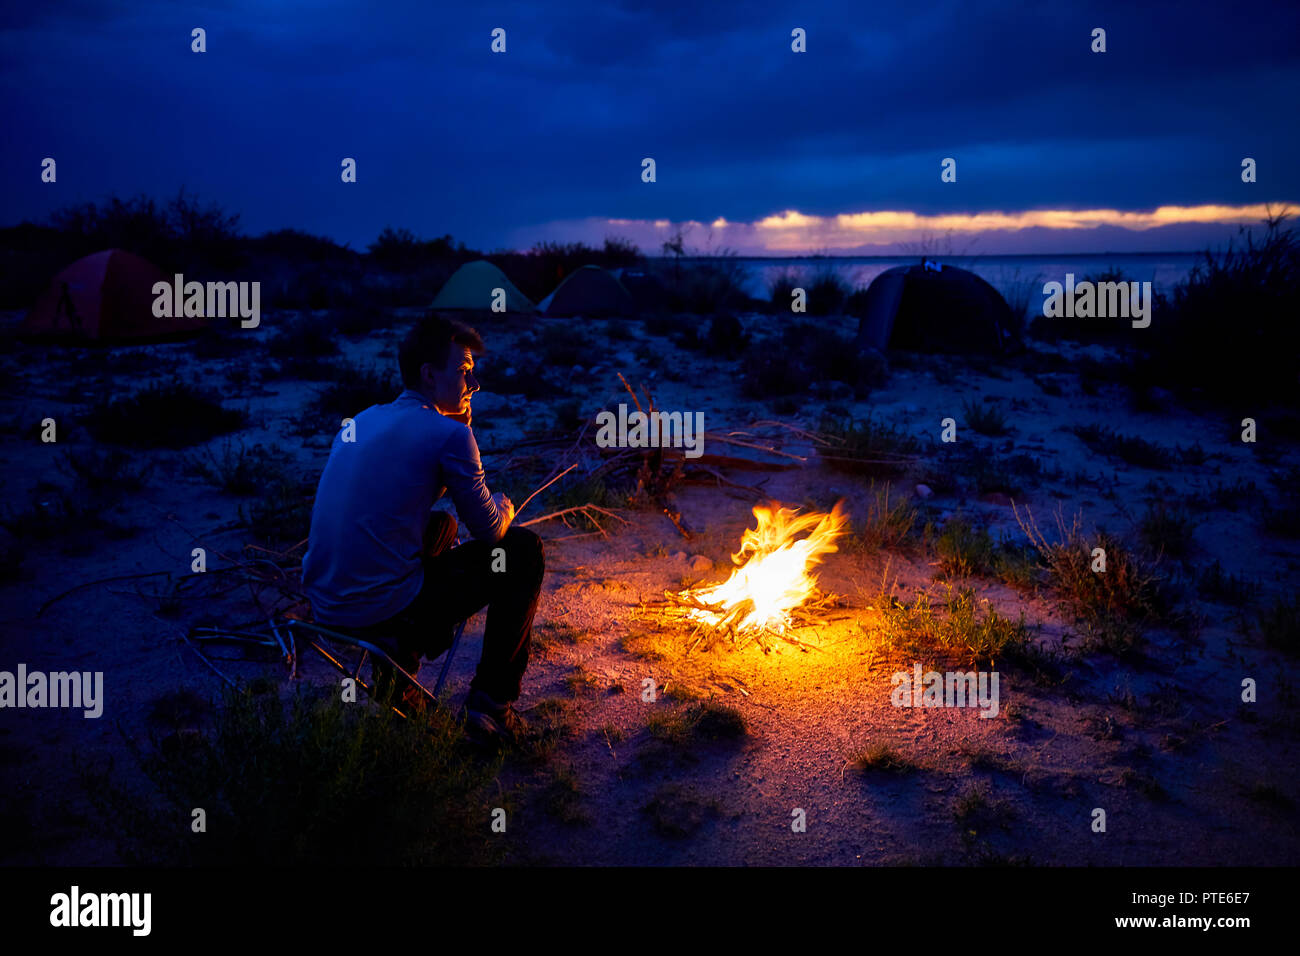 Man looking at campfire and tent at night on the lake beach Stock Photo